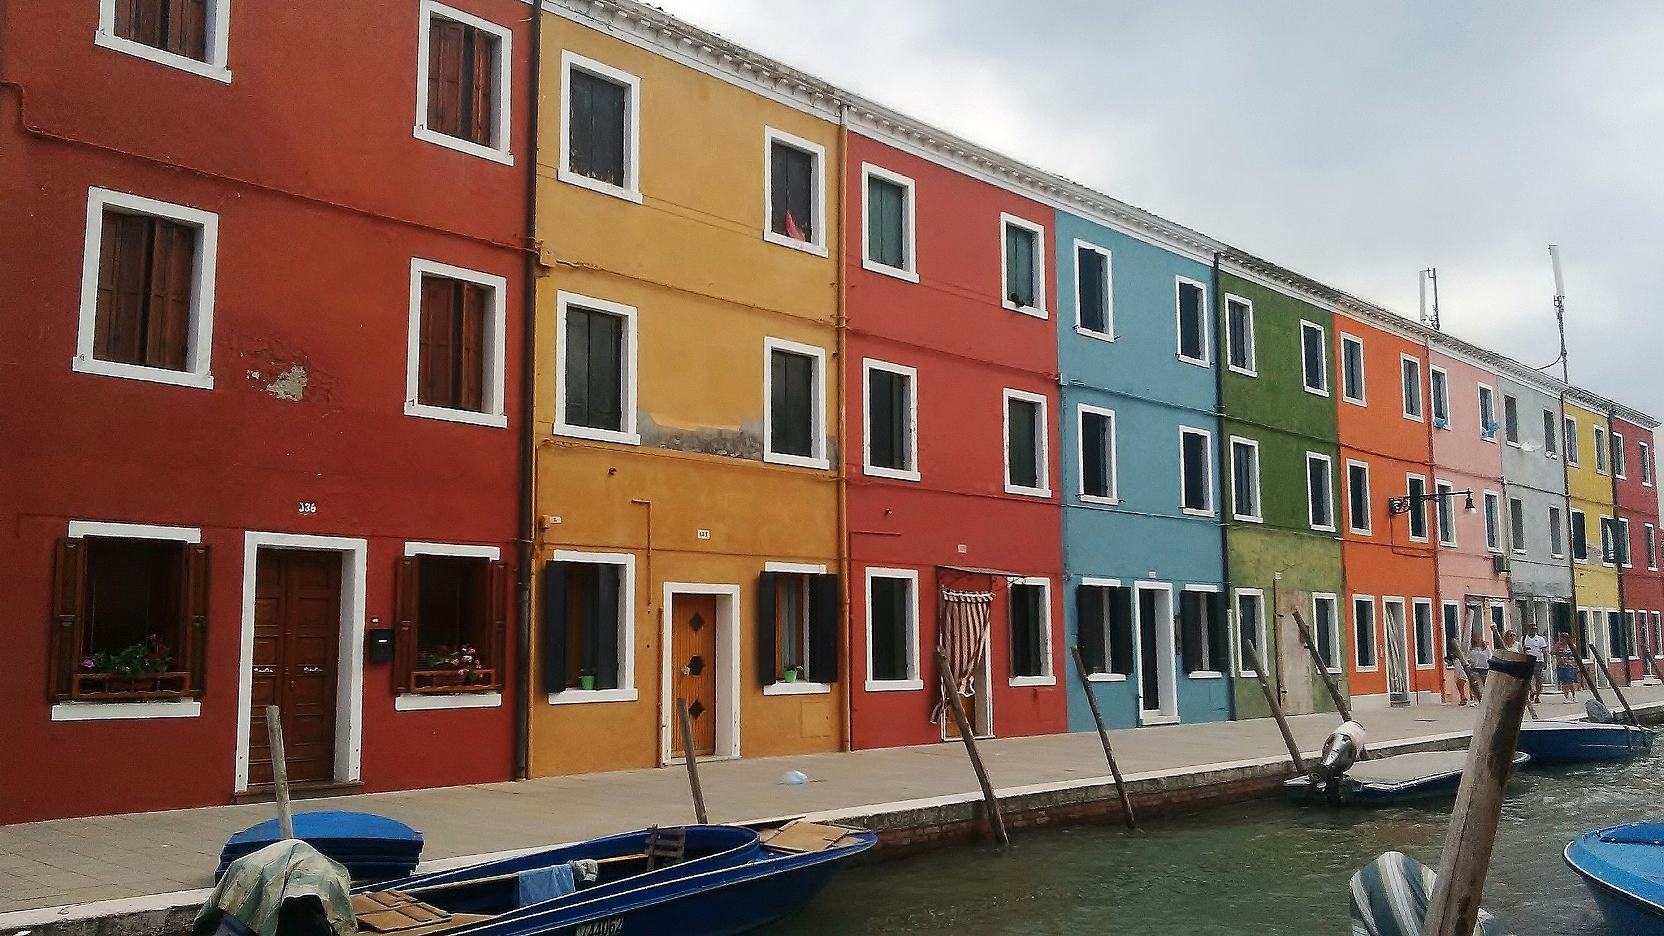 burano colourful buildings